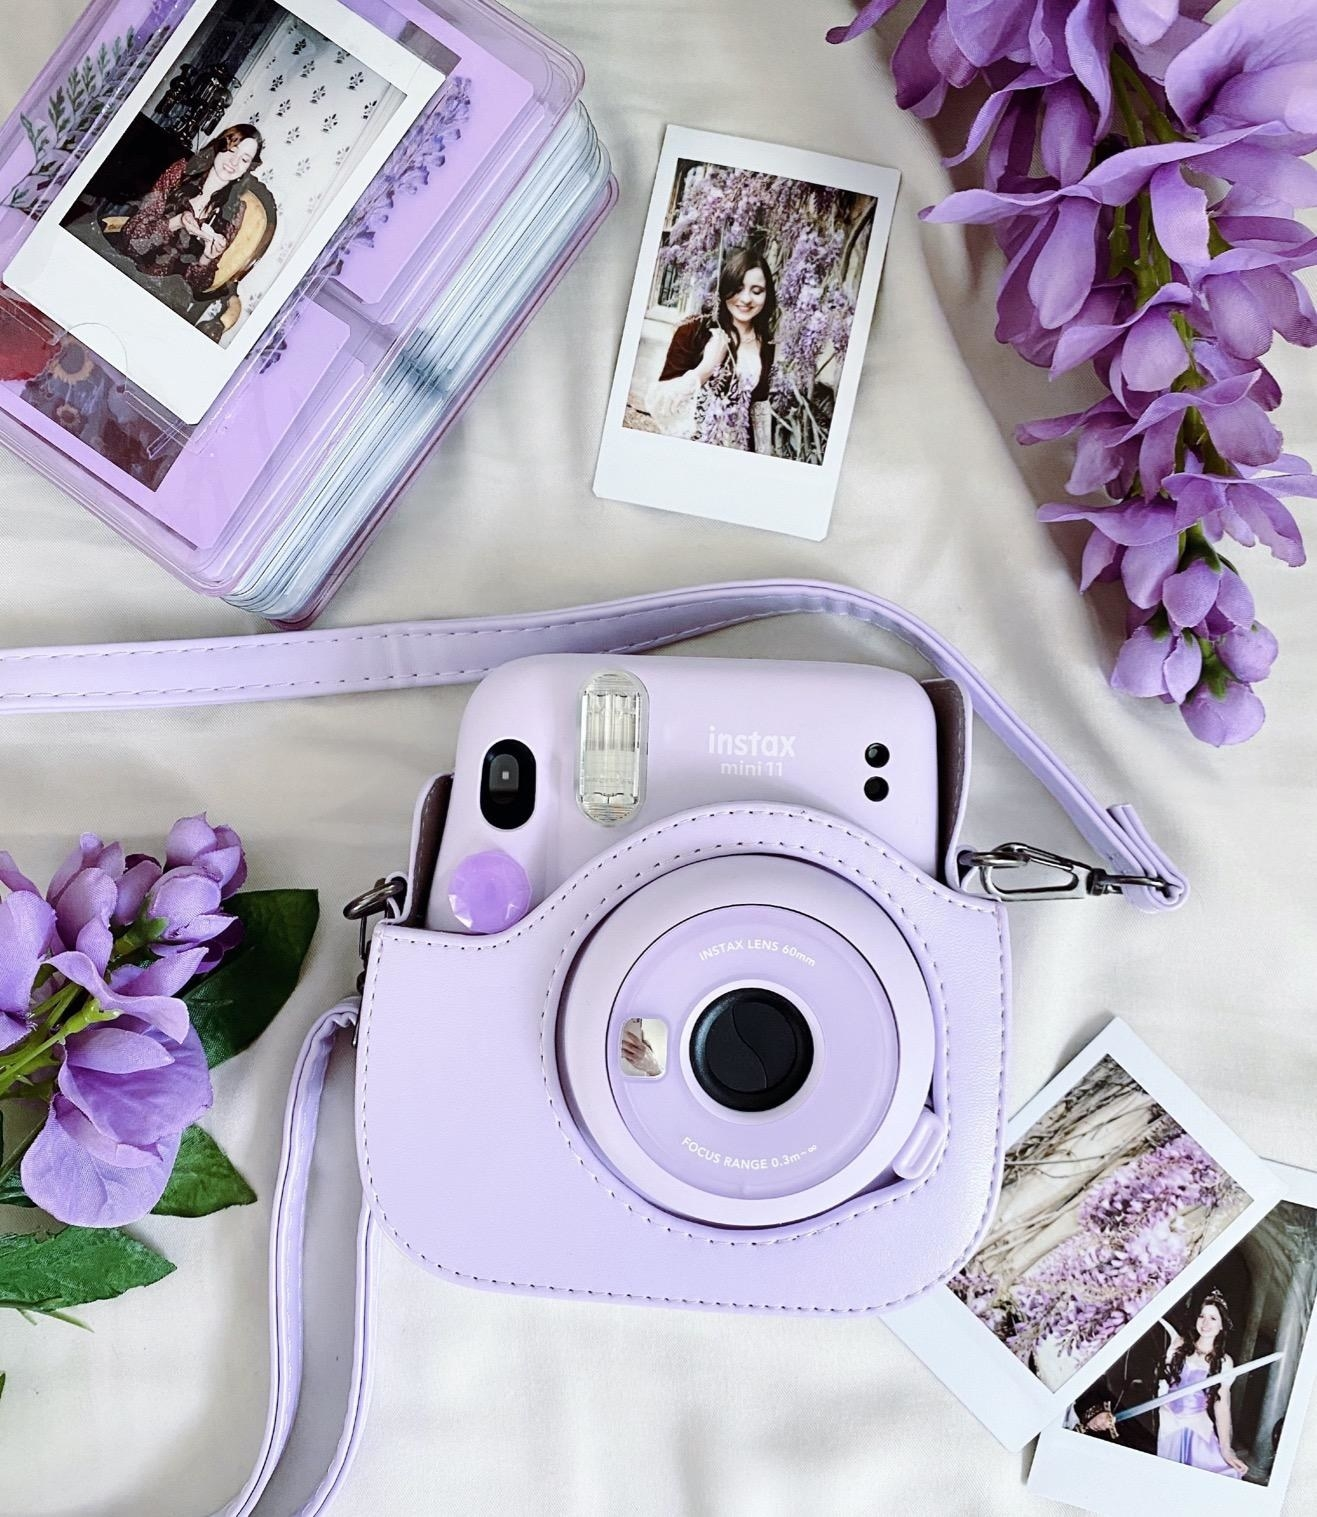 lavender instax camera inside a case laid next to photo prints and flowers